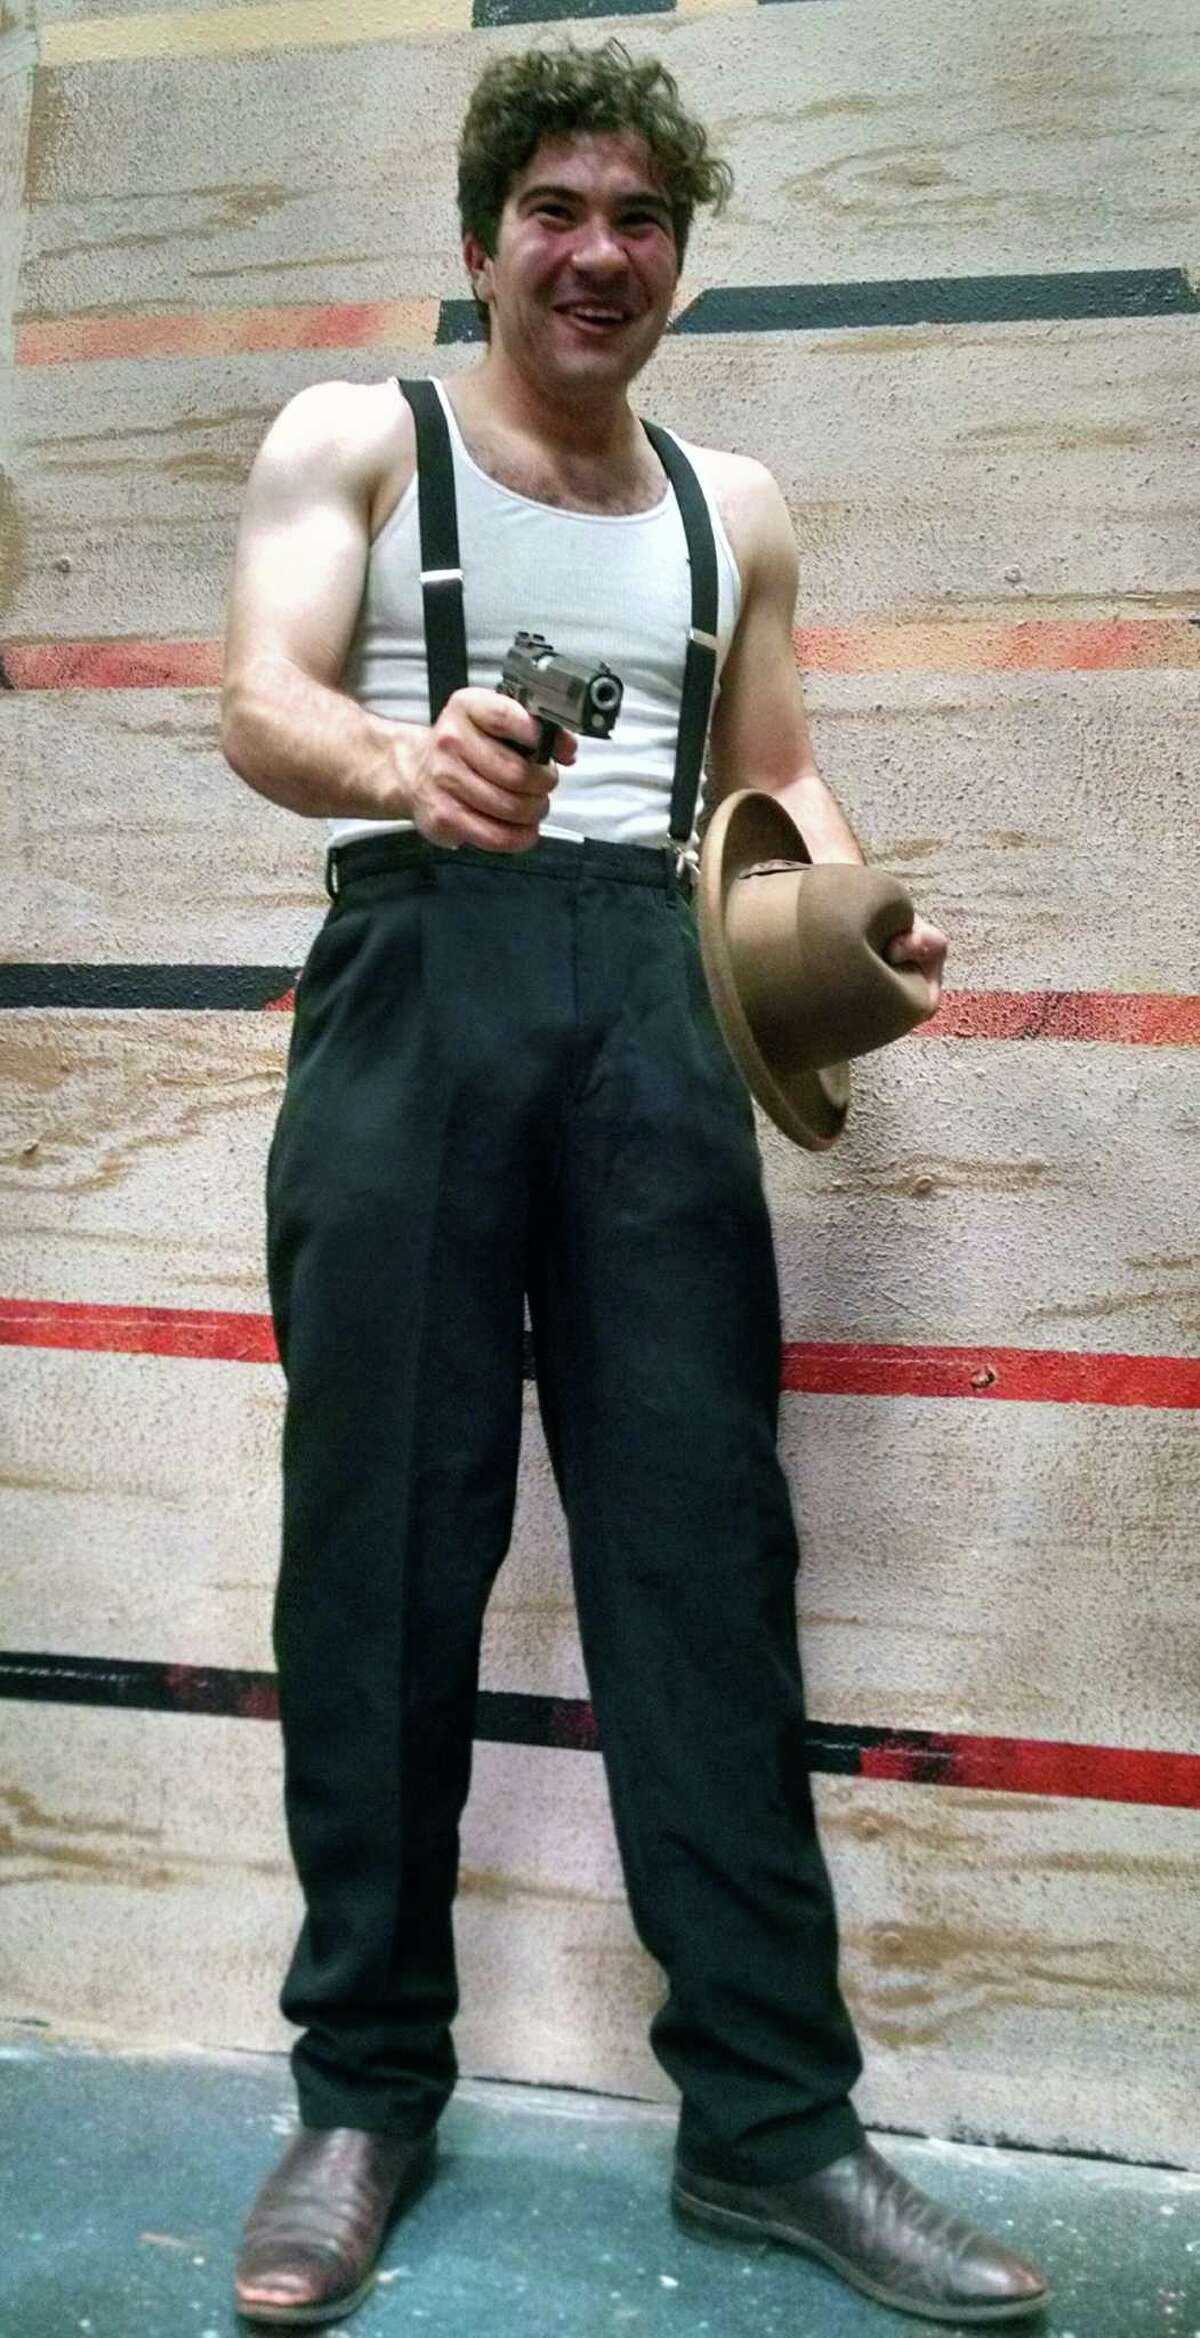 """Ramsey Marion Sweatmon plays Clyde Barrow in Performing Arts San Antonio's staging of """"Bonnie and Clyde."""""""